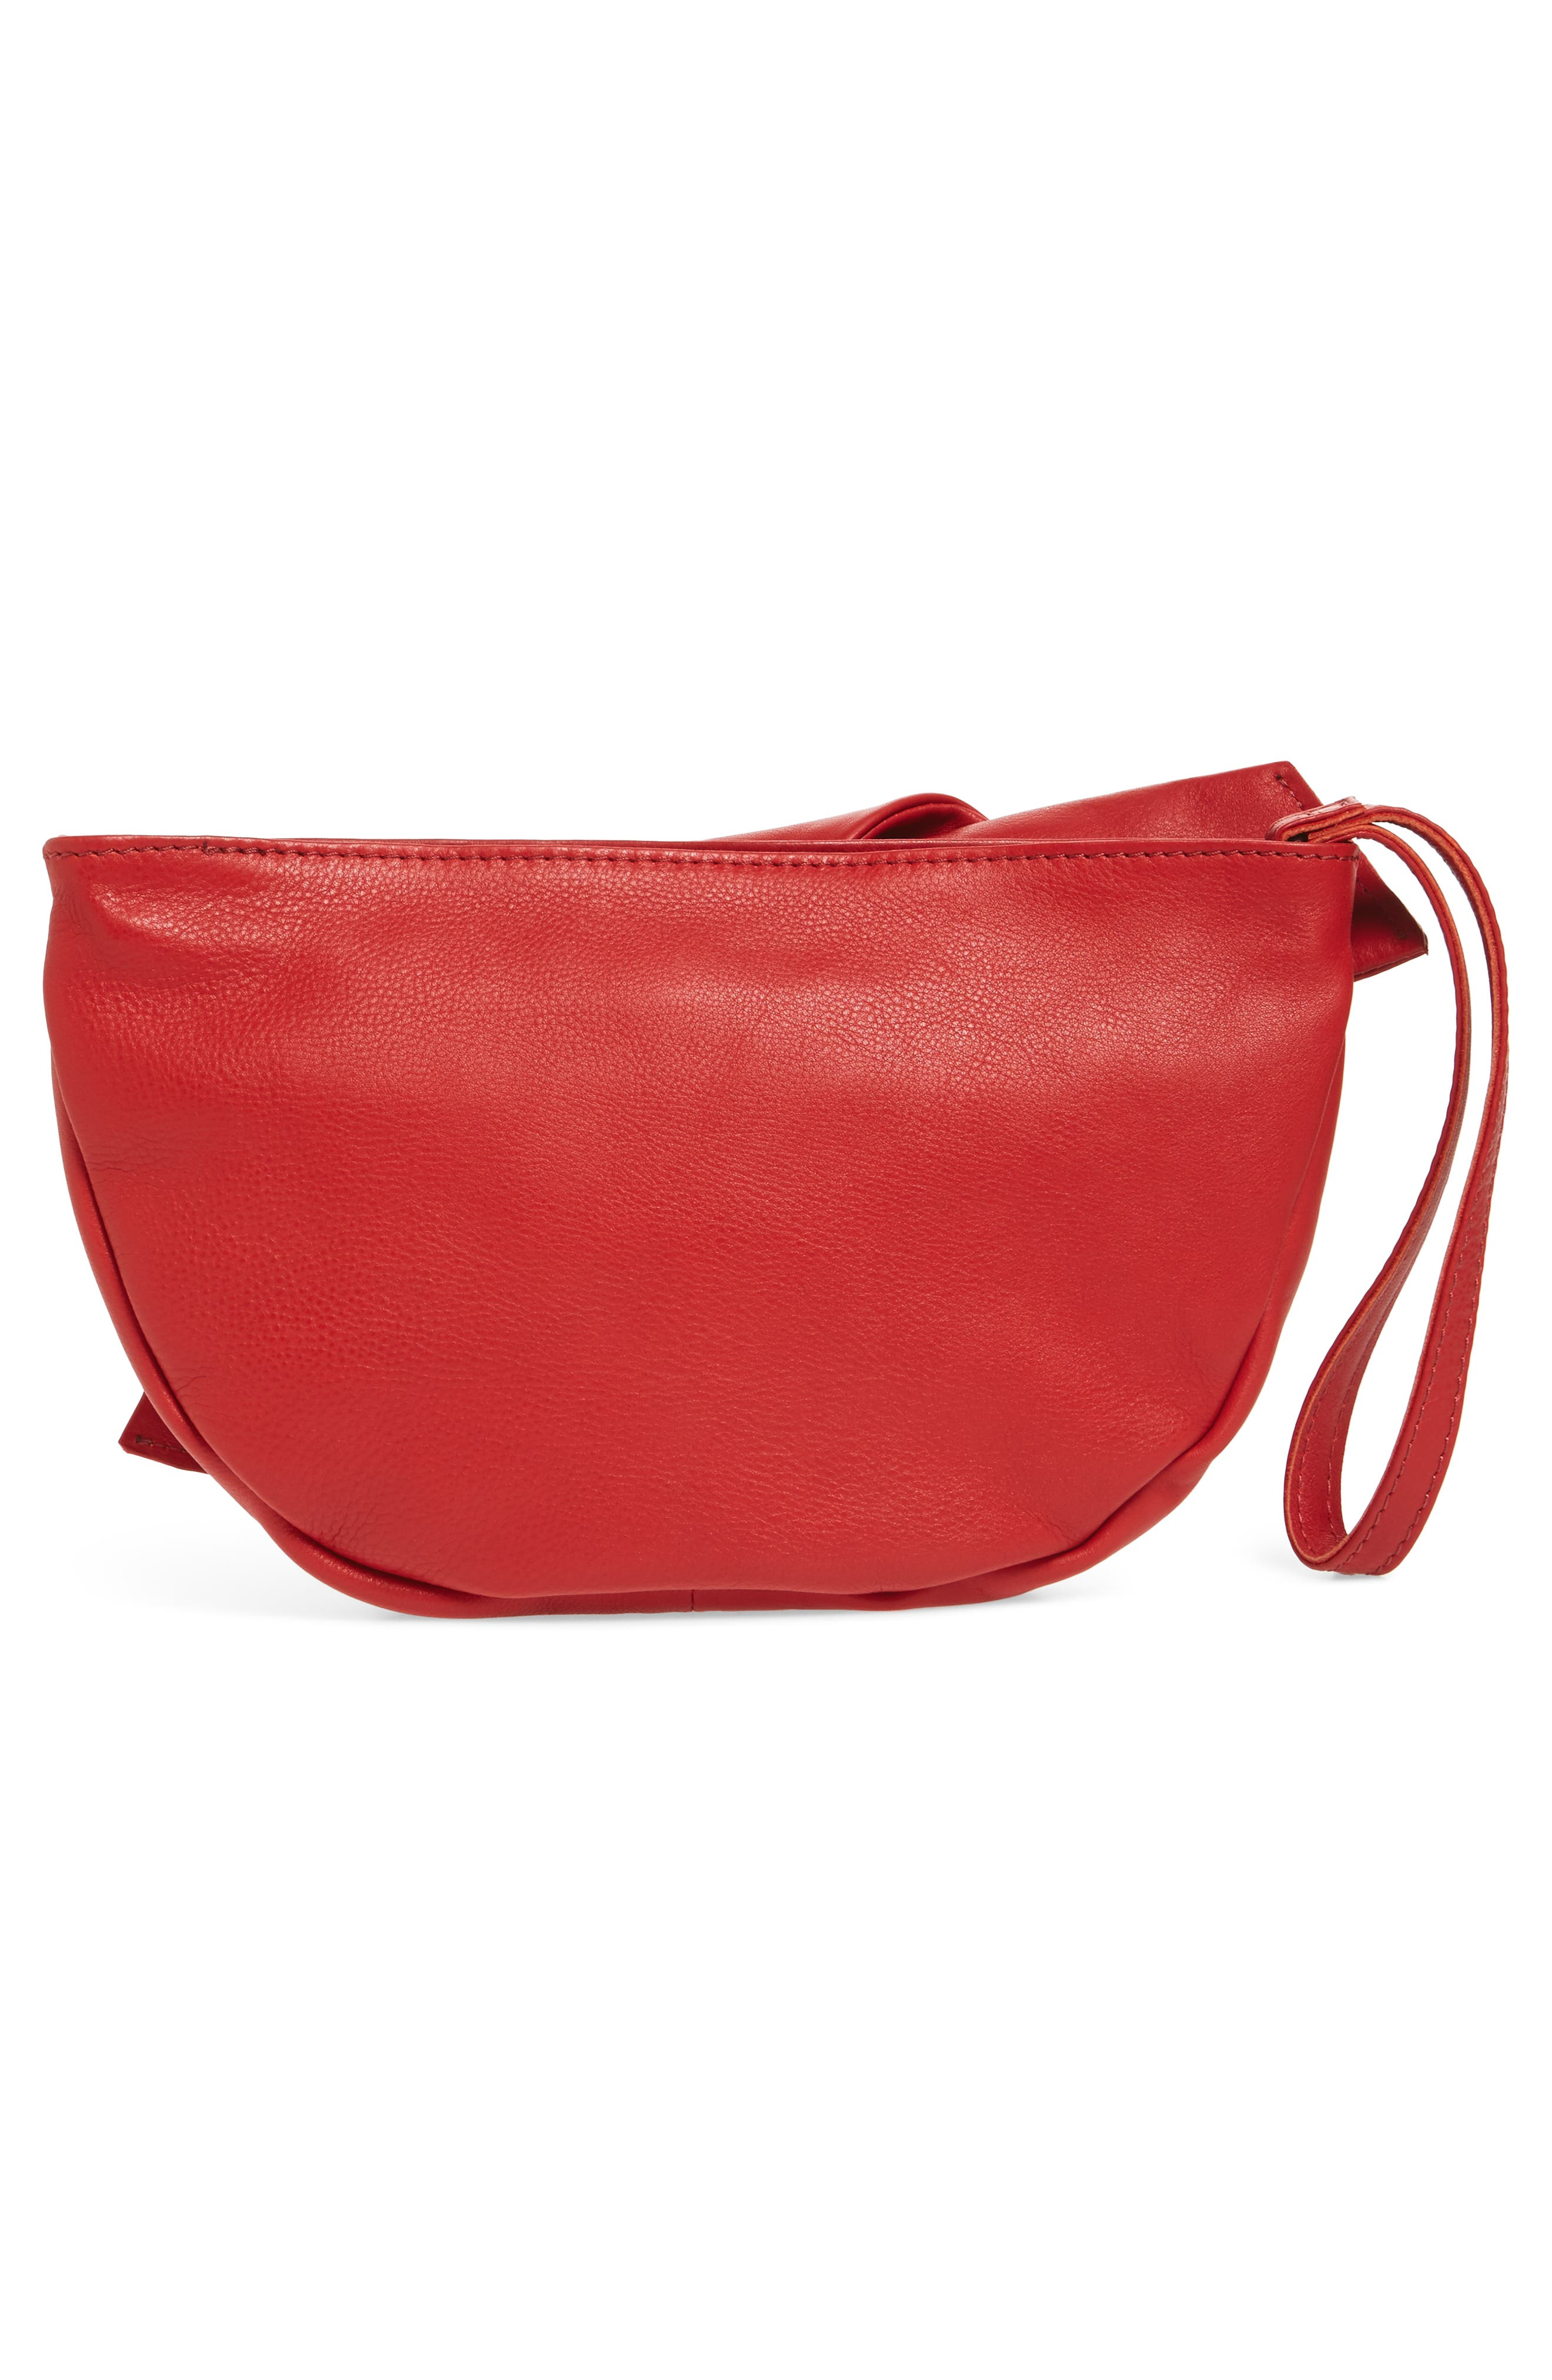 Jasmine Leather Clutch,                             Alternate thumbnail 3, color,                             Red